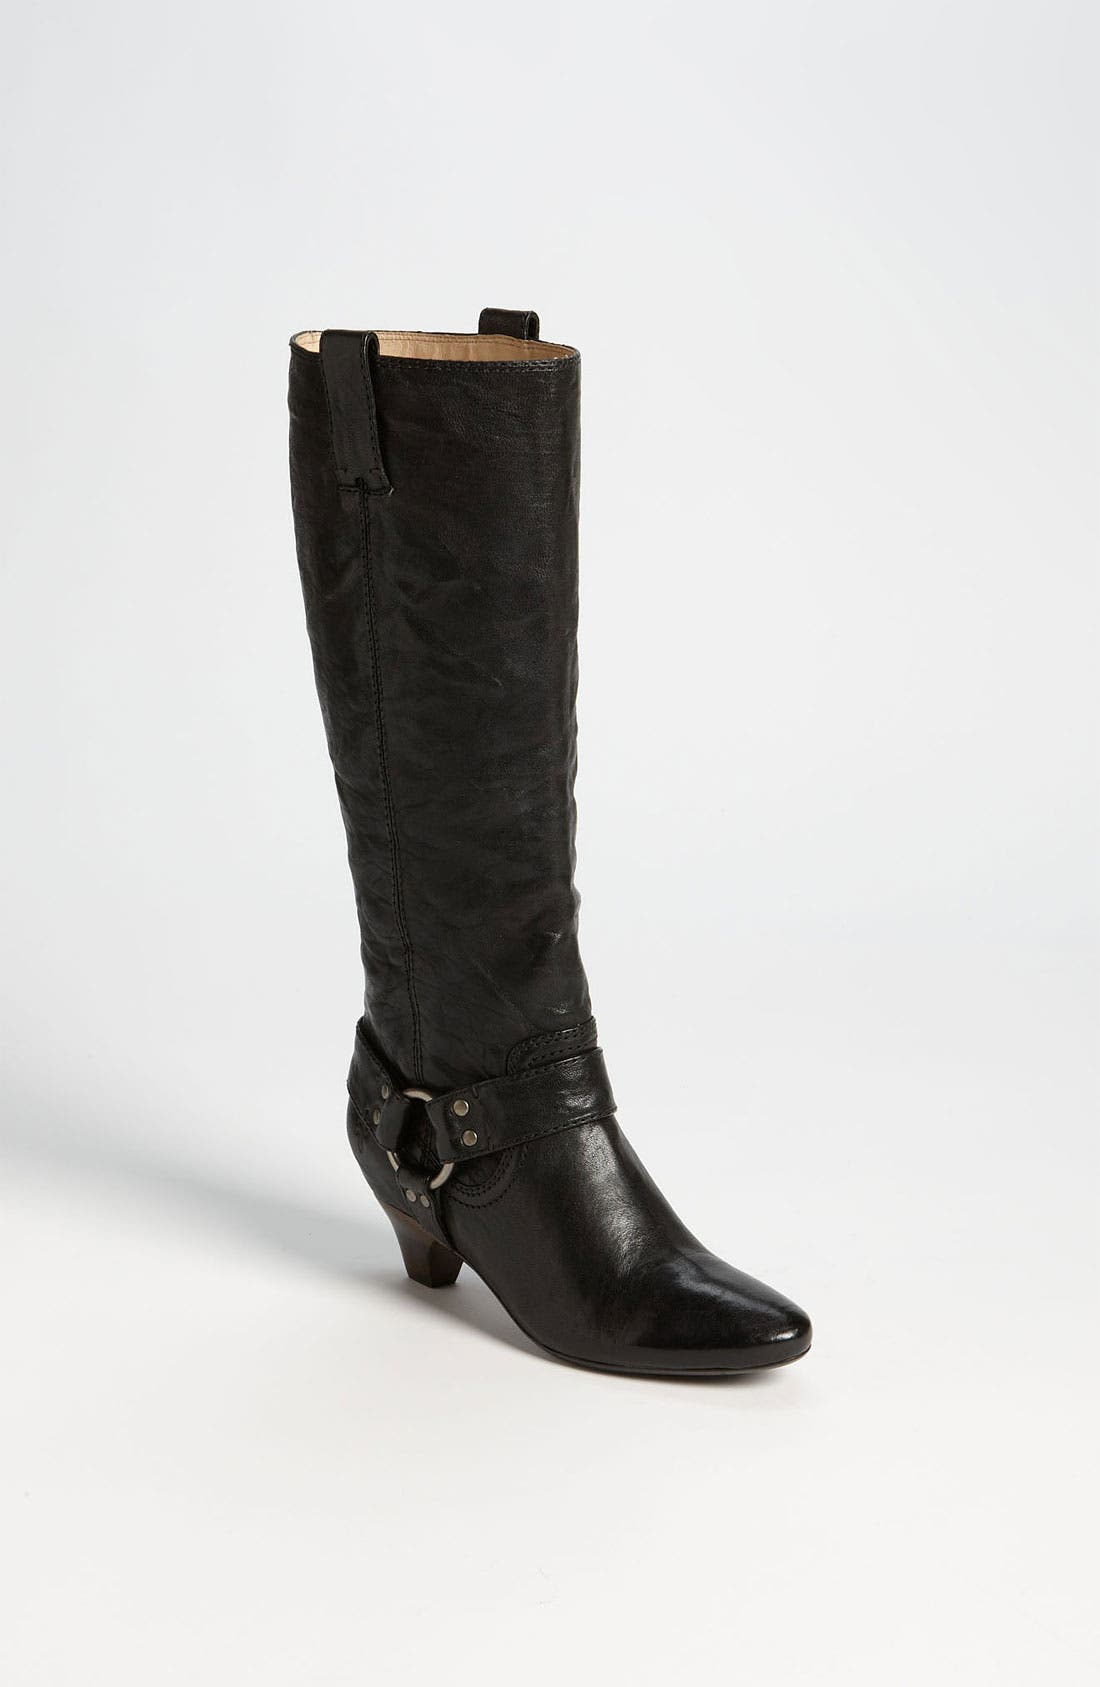 Alternate Image 1 Selected - Frye 'Steffi' Harness Boot